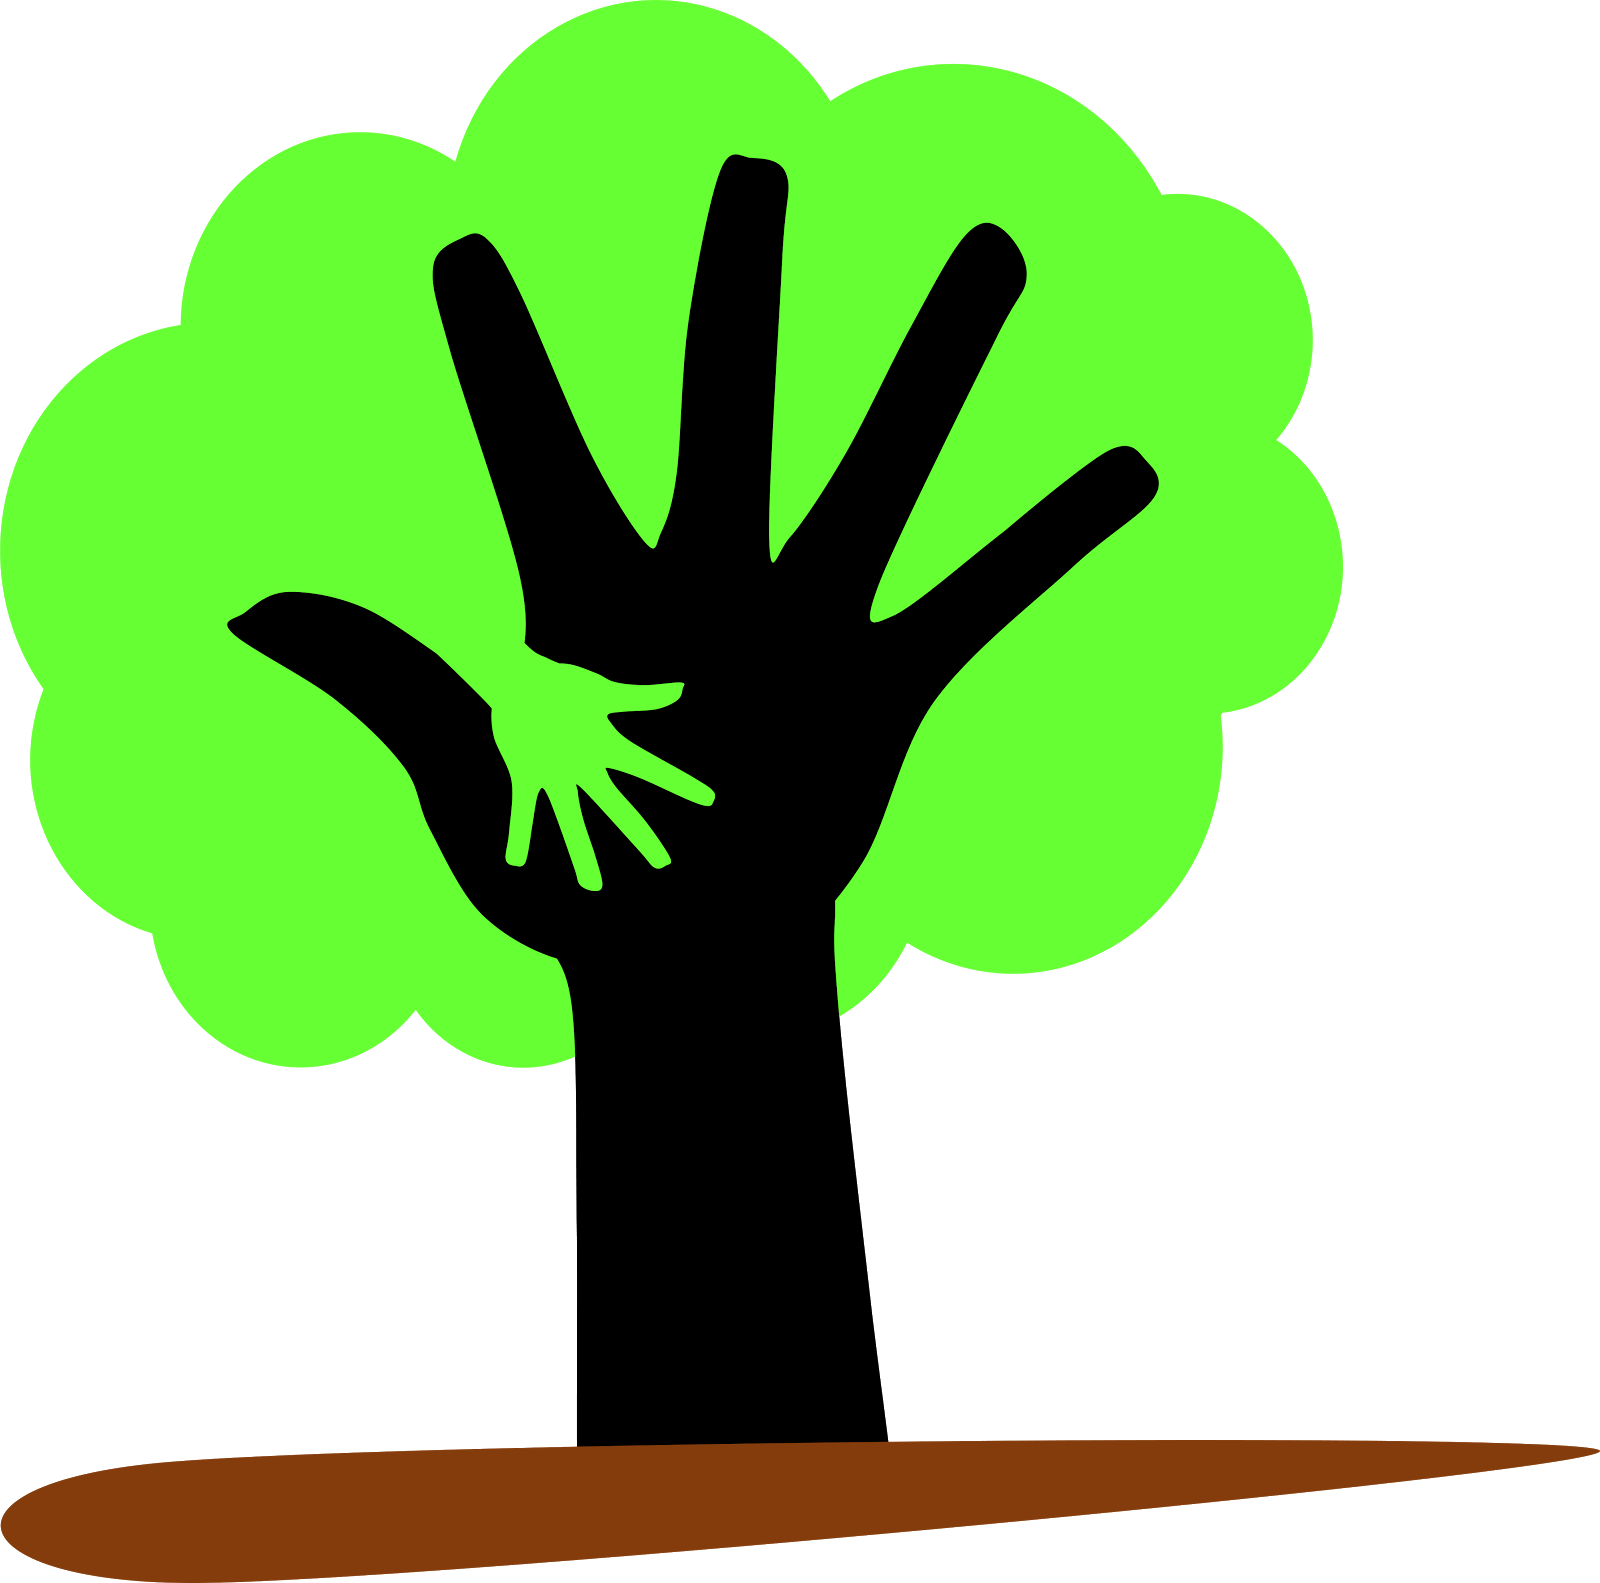 tree supporting the environment clipart - Clipground